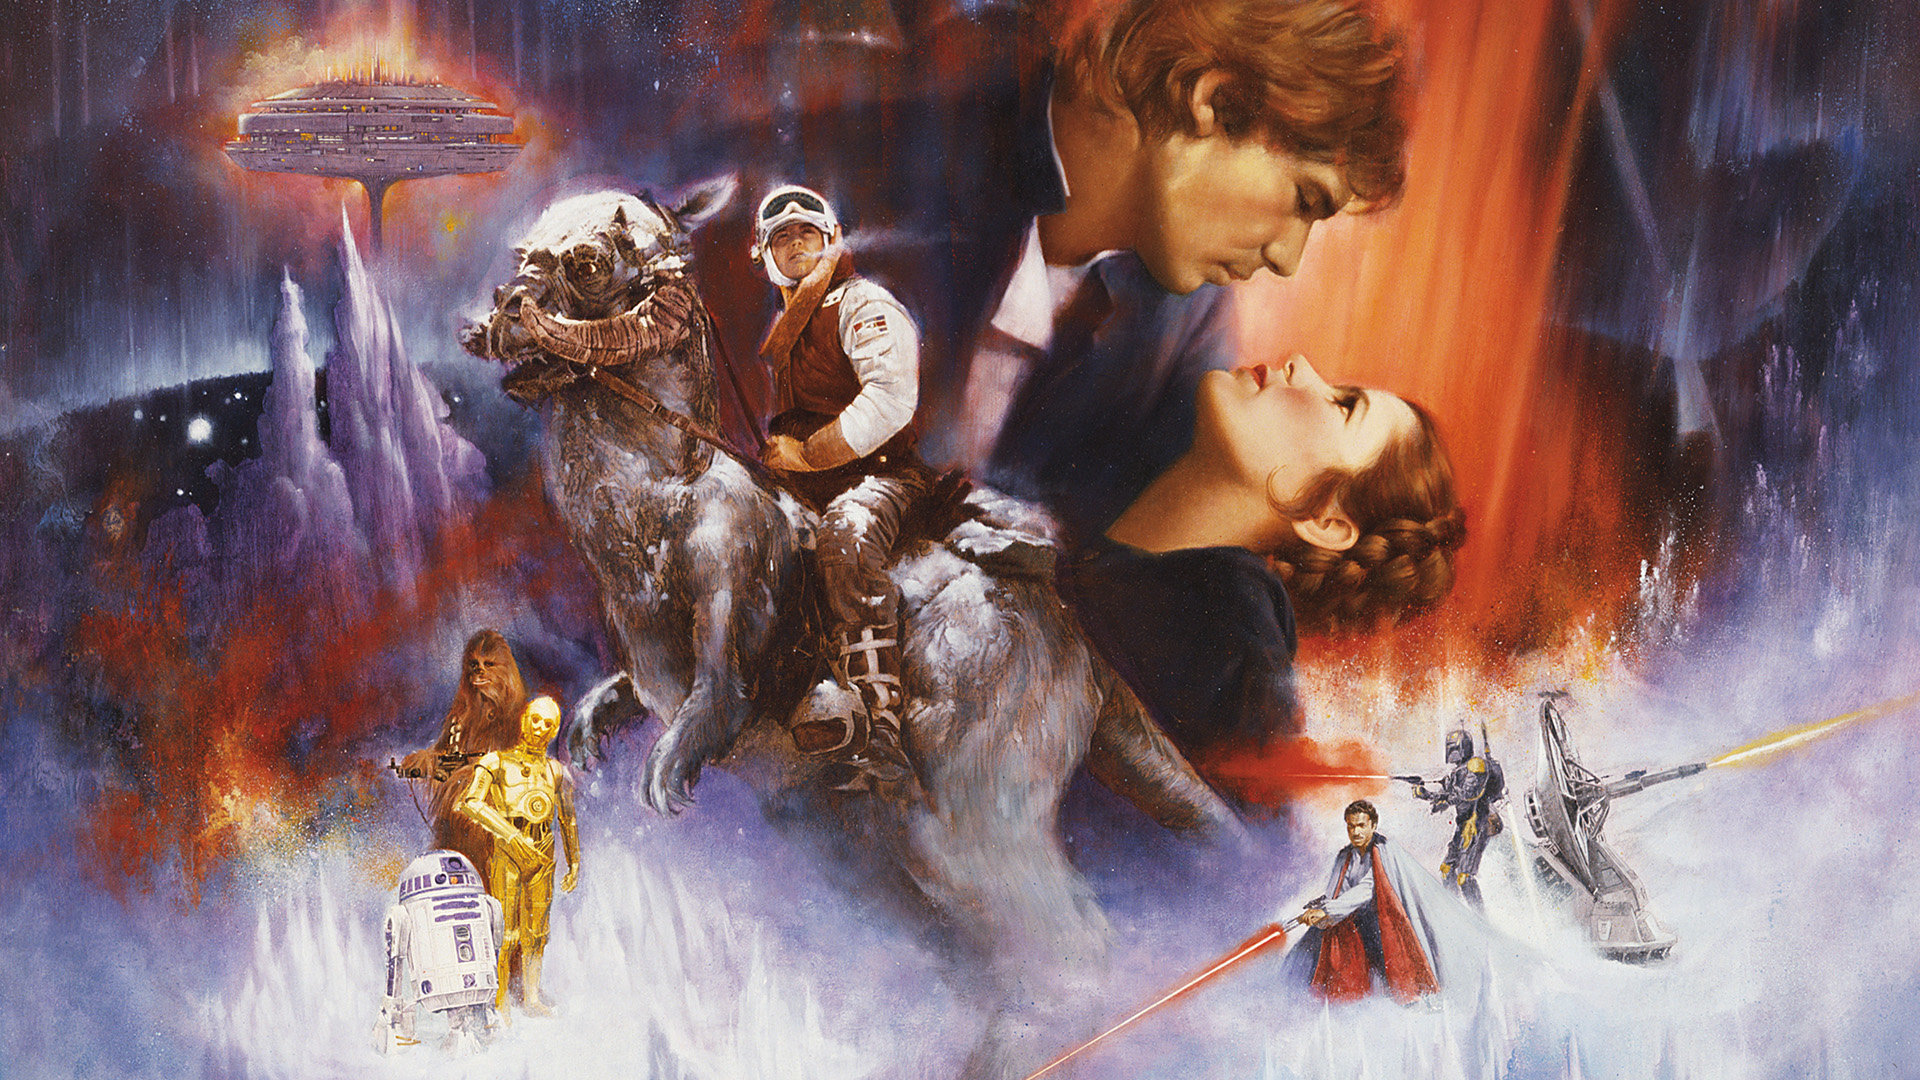 Star Wars Episode 5 V The Empire Strikes Back Wallpapers Hd For